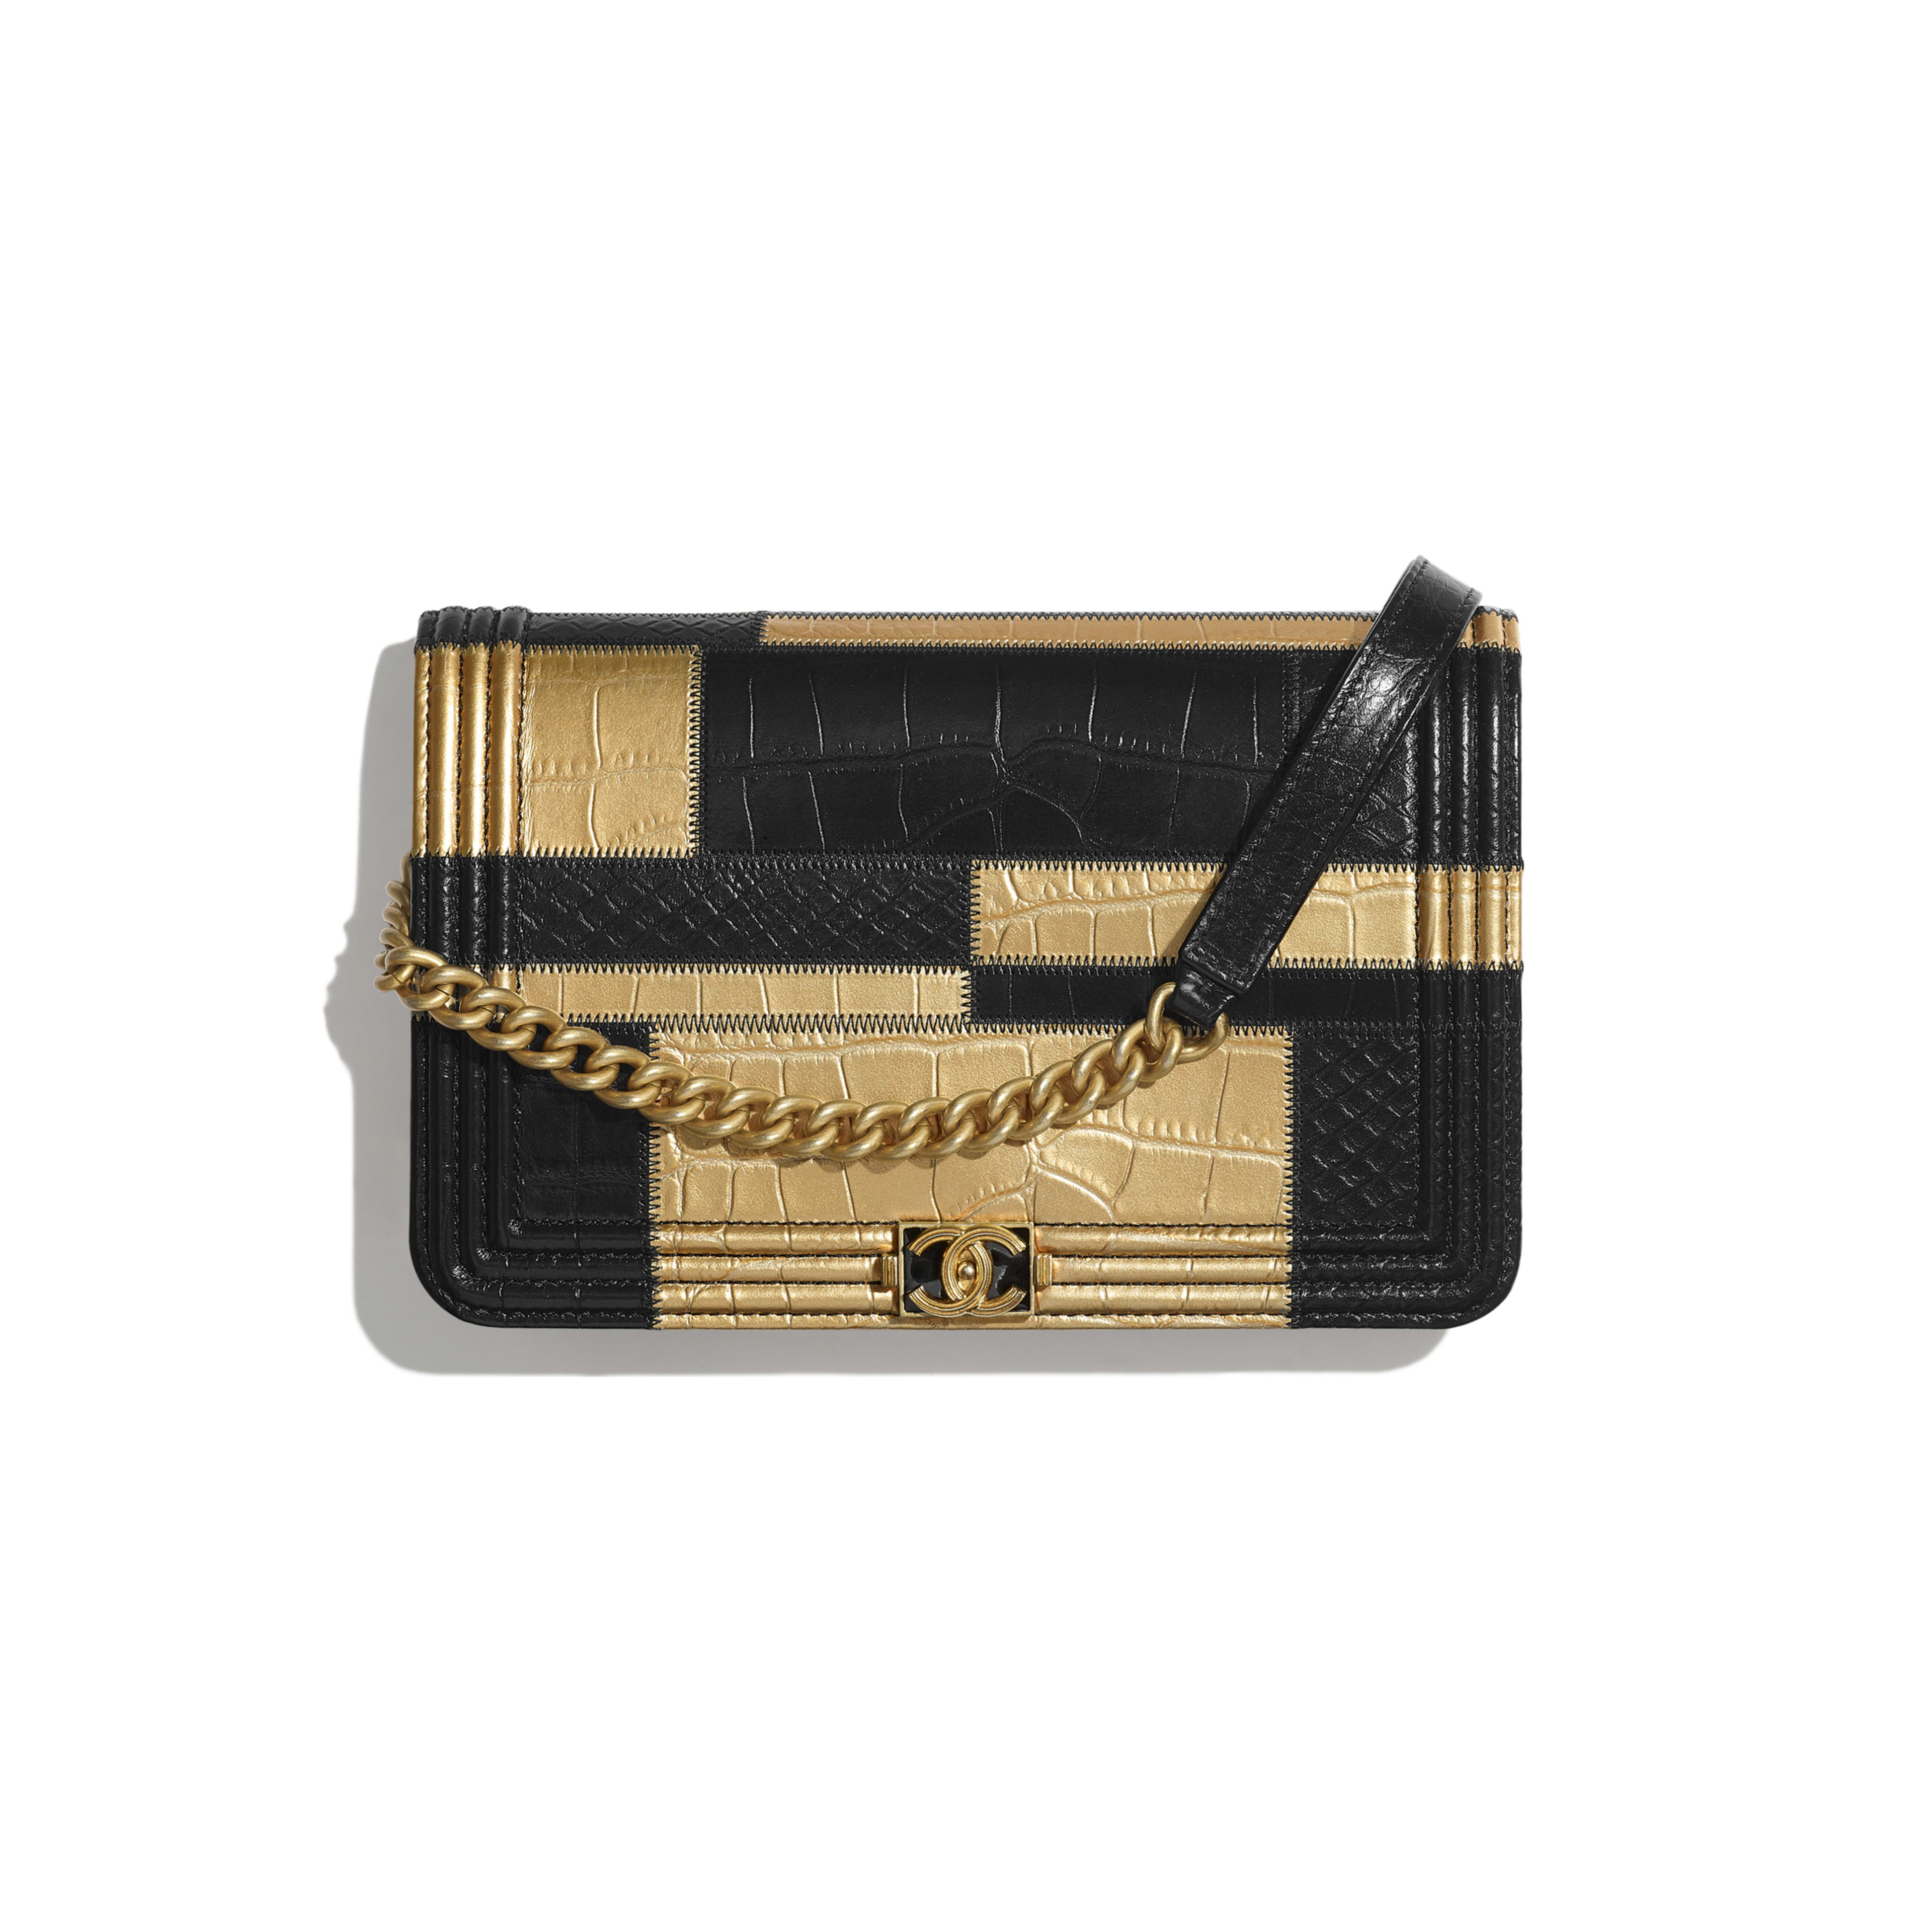 BOY CHANEL Wallet on Chain - Black & Gold - Crocodile Embossed Calfskin, Python Embossed Calfskin & Gold-Tone Metal - Default view - see full sized version